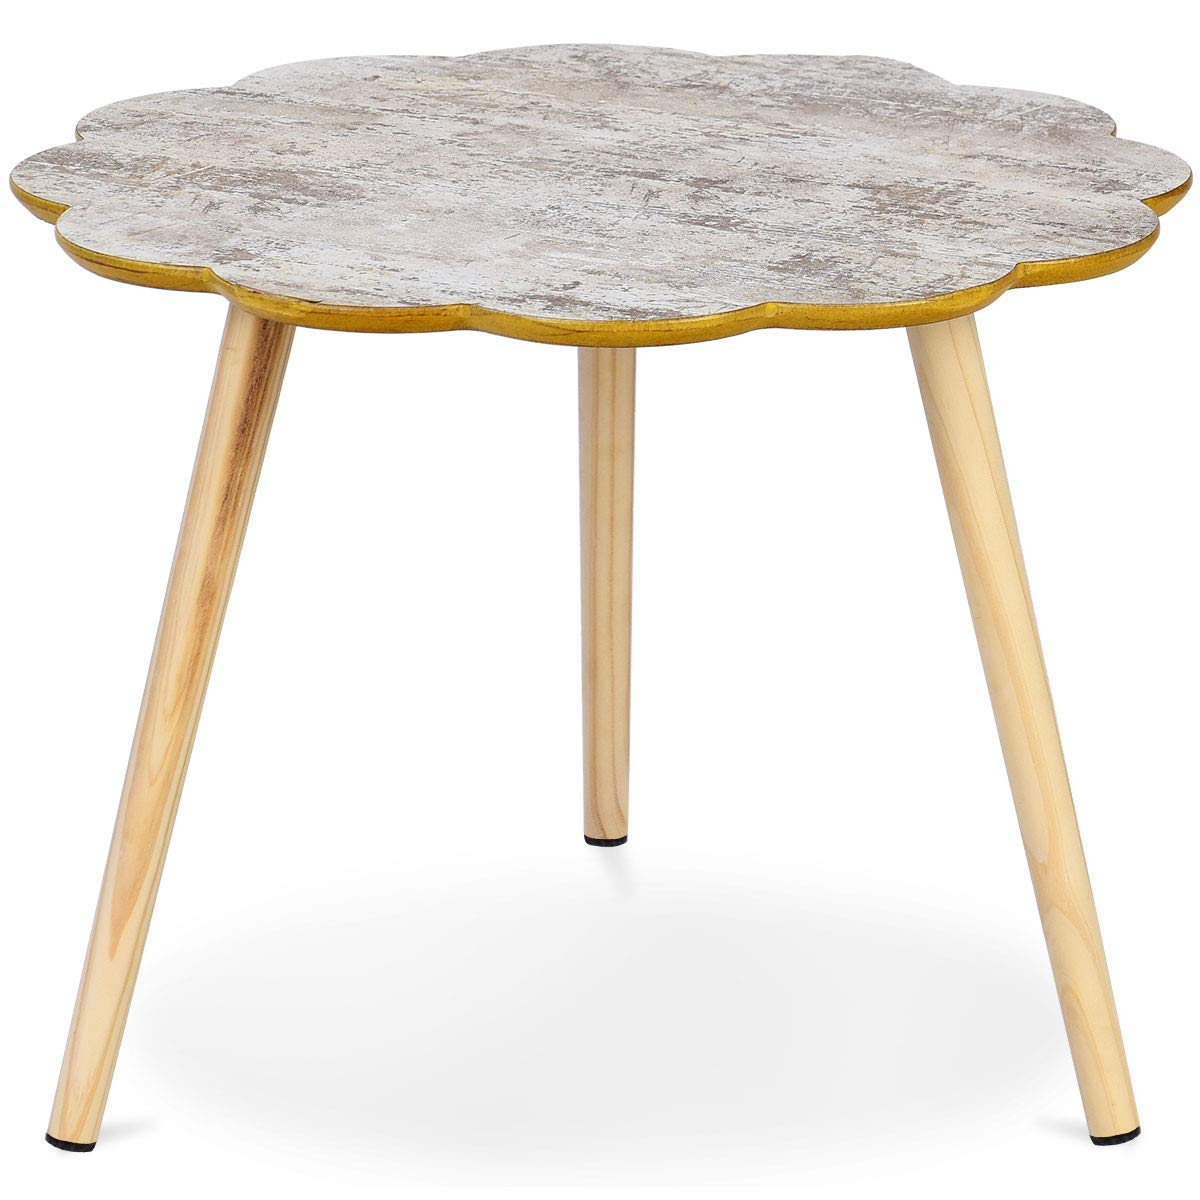 Giantex Nesting Table Flower Shaped Coffee Table Sofa Side Table Accent Home Living Room Furniture End Table